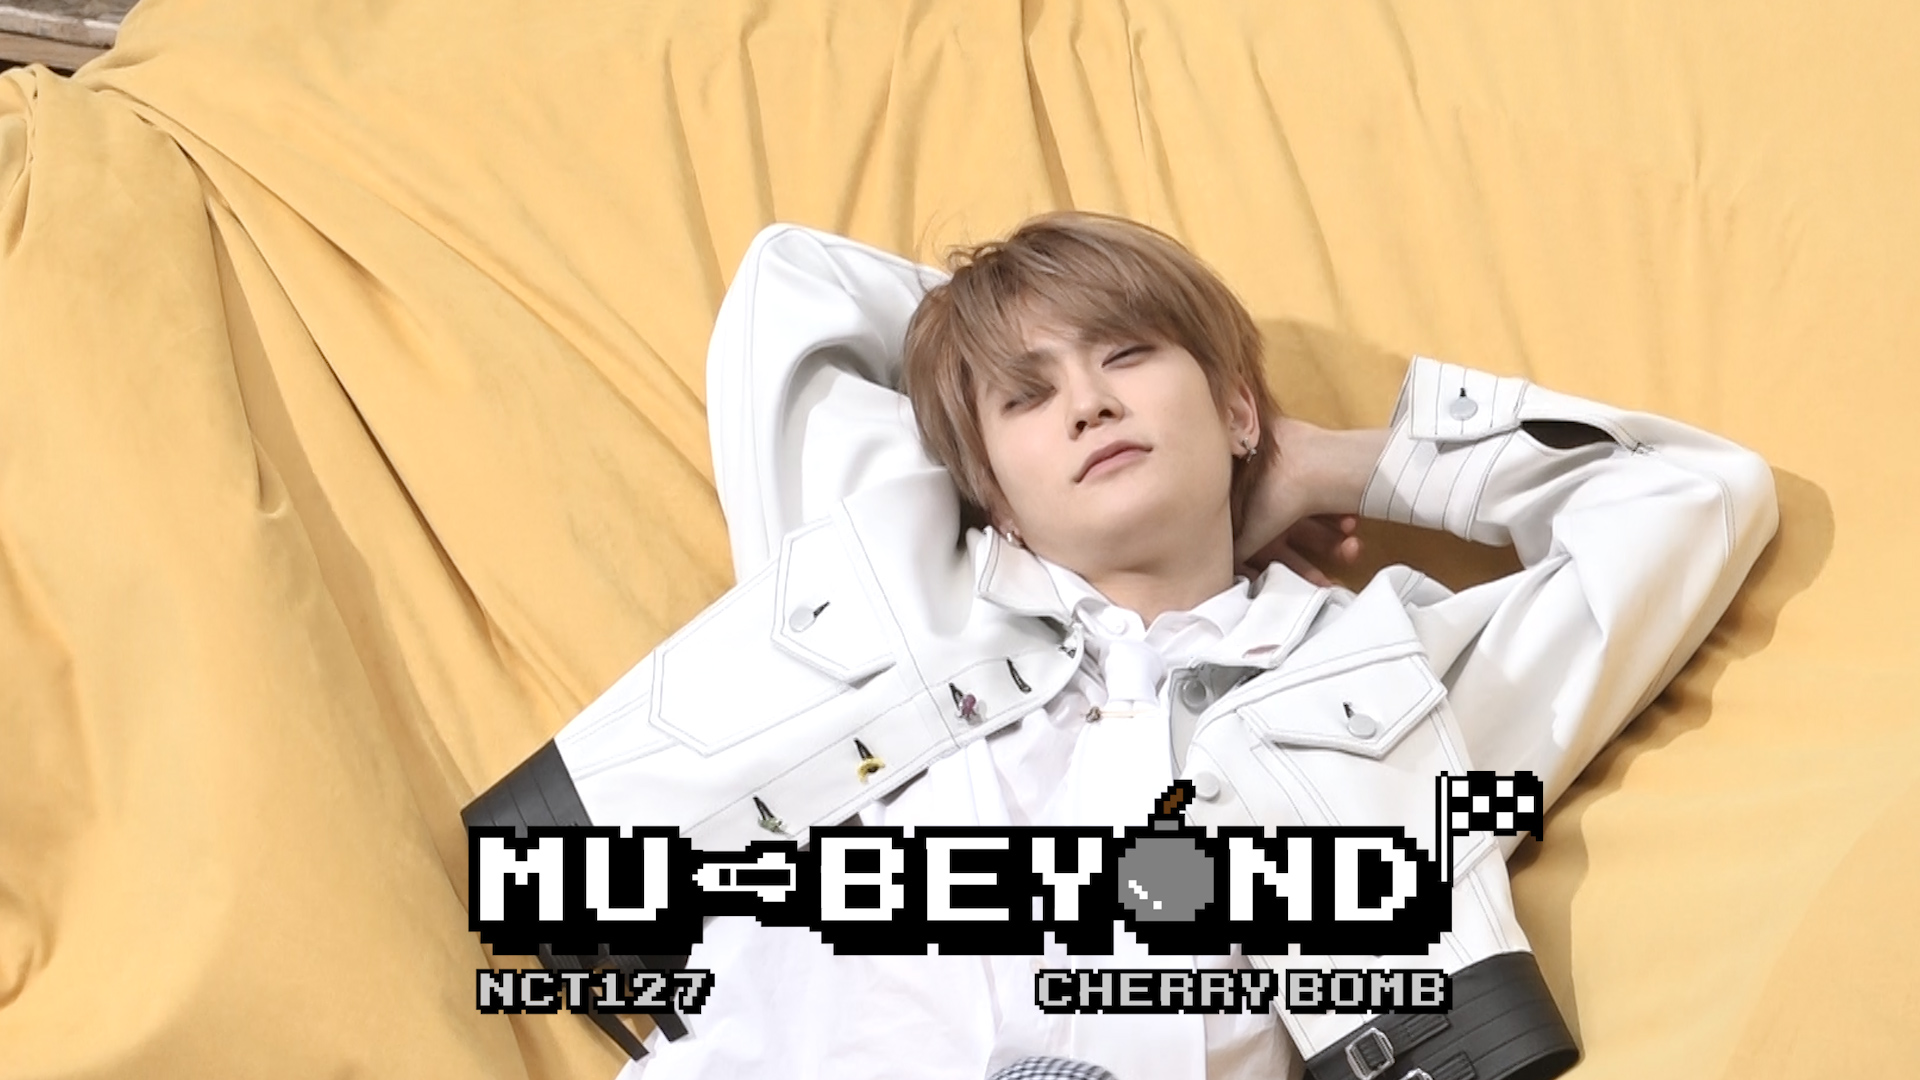 [MU-BEYOND] NCT 127 Cherry Bomb #2